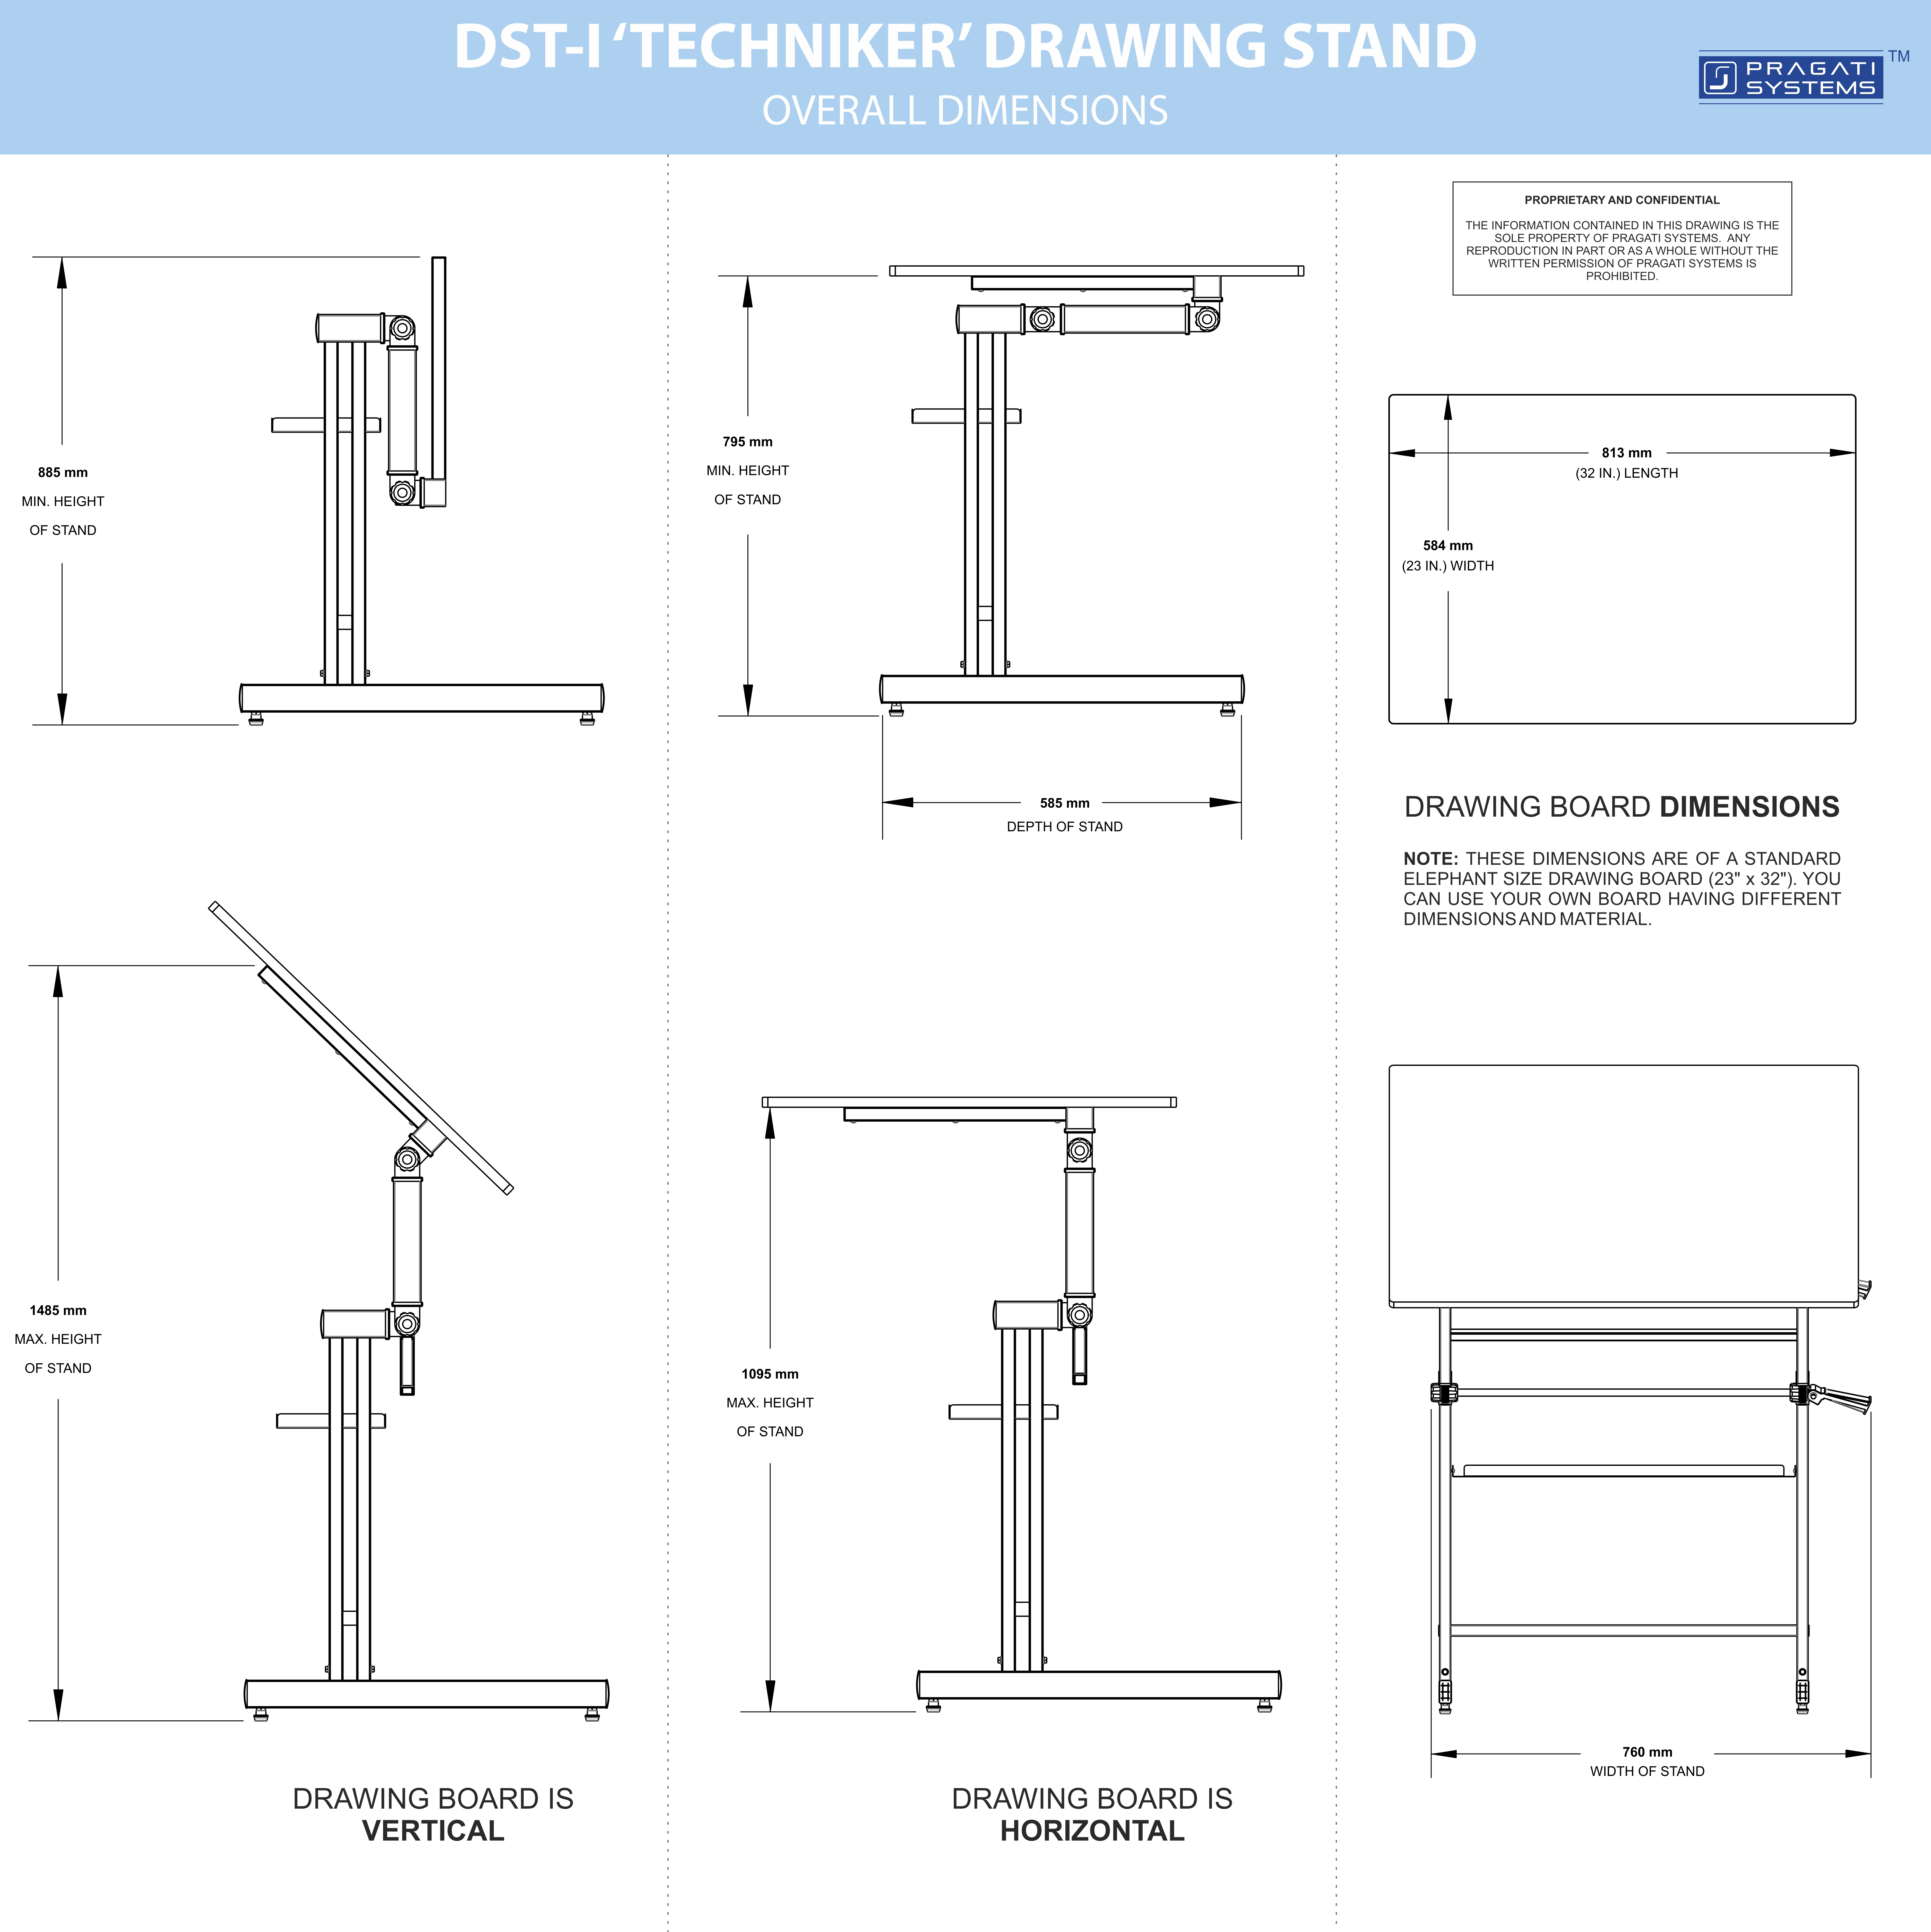 Drawing Stand (Drafting Table) Imperial Size DST-I